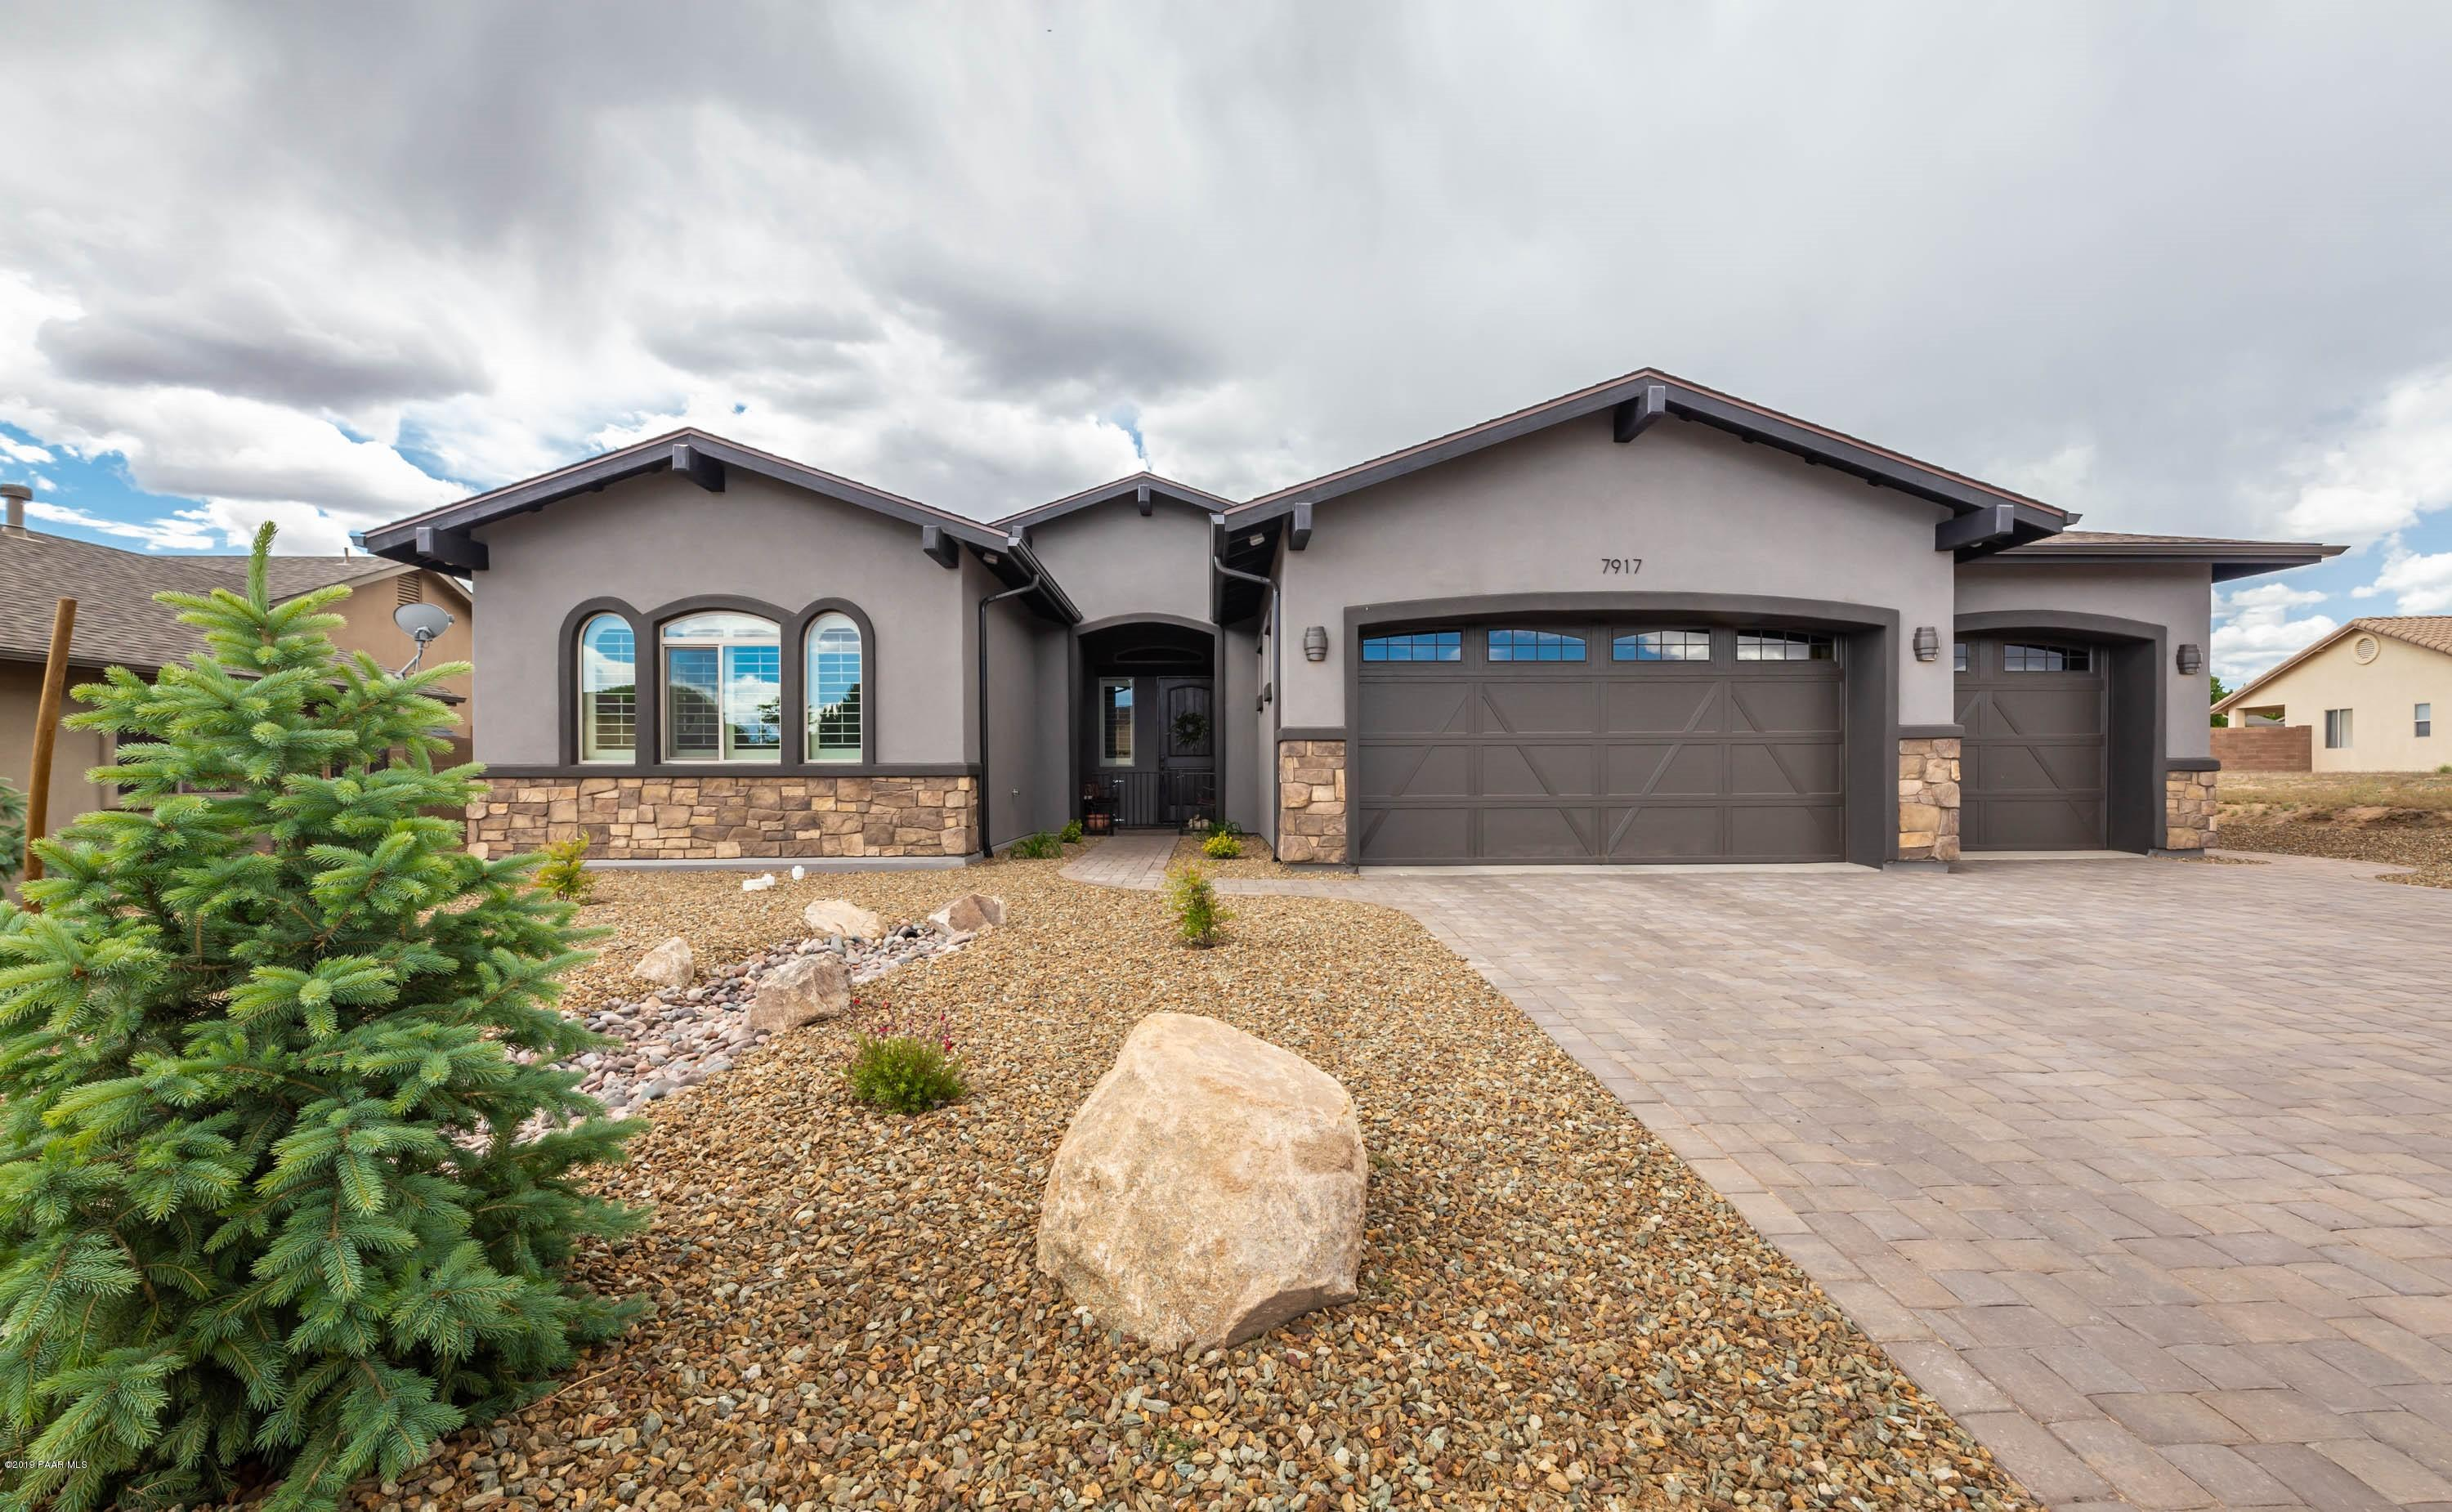 7917 E Smoke House Lane, Prescott Valley, Arizona